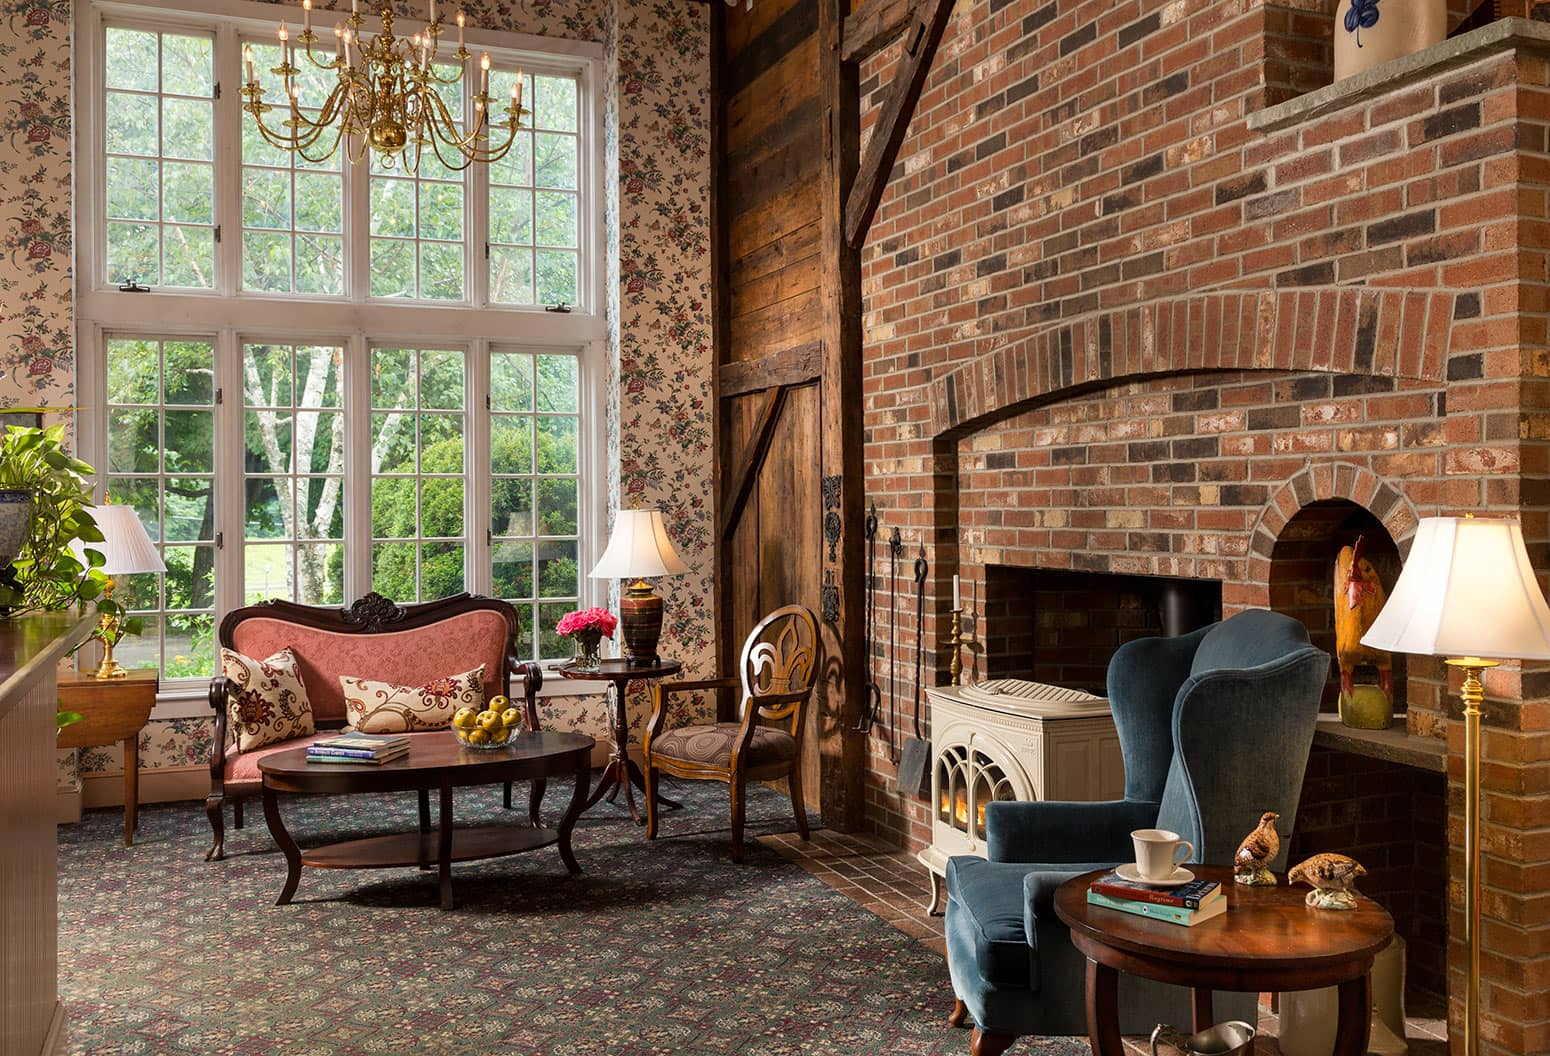 The Lobby of Chesterfield Inn with Exposed brick and white stove, loveseat, etc.